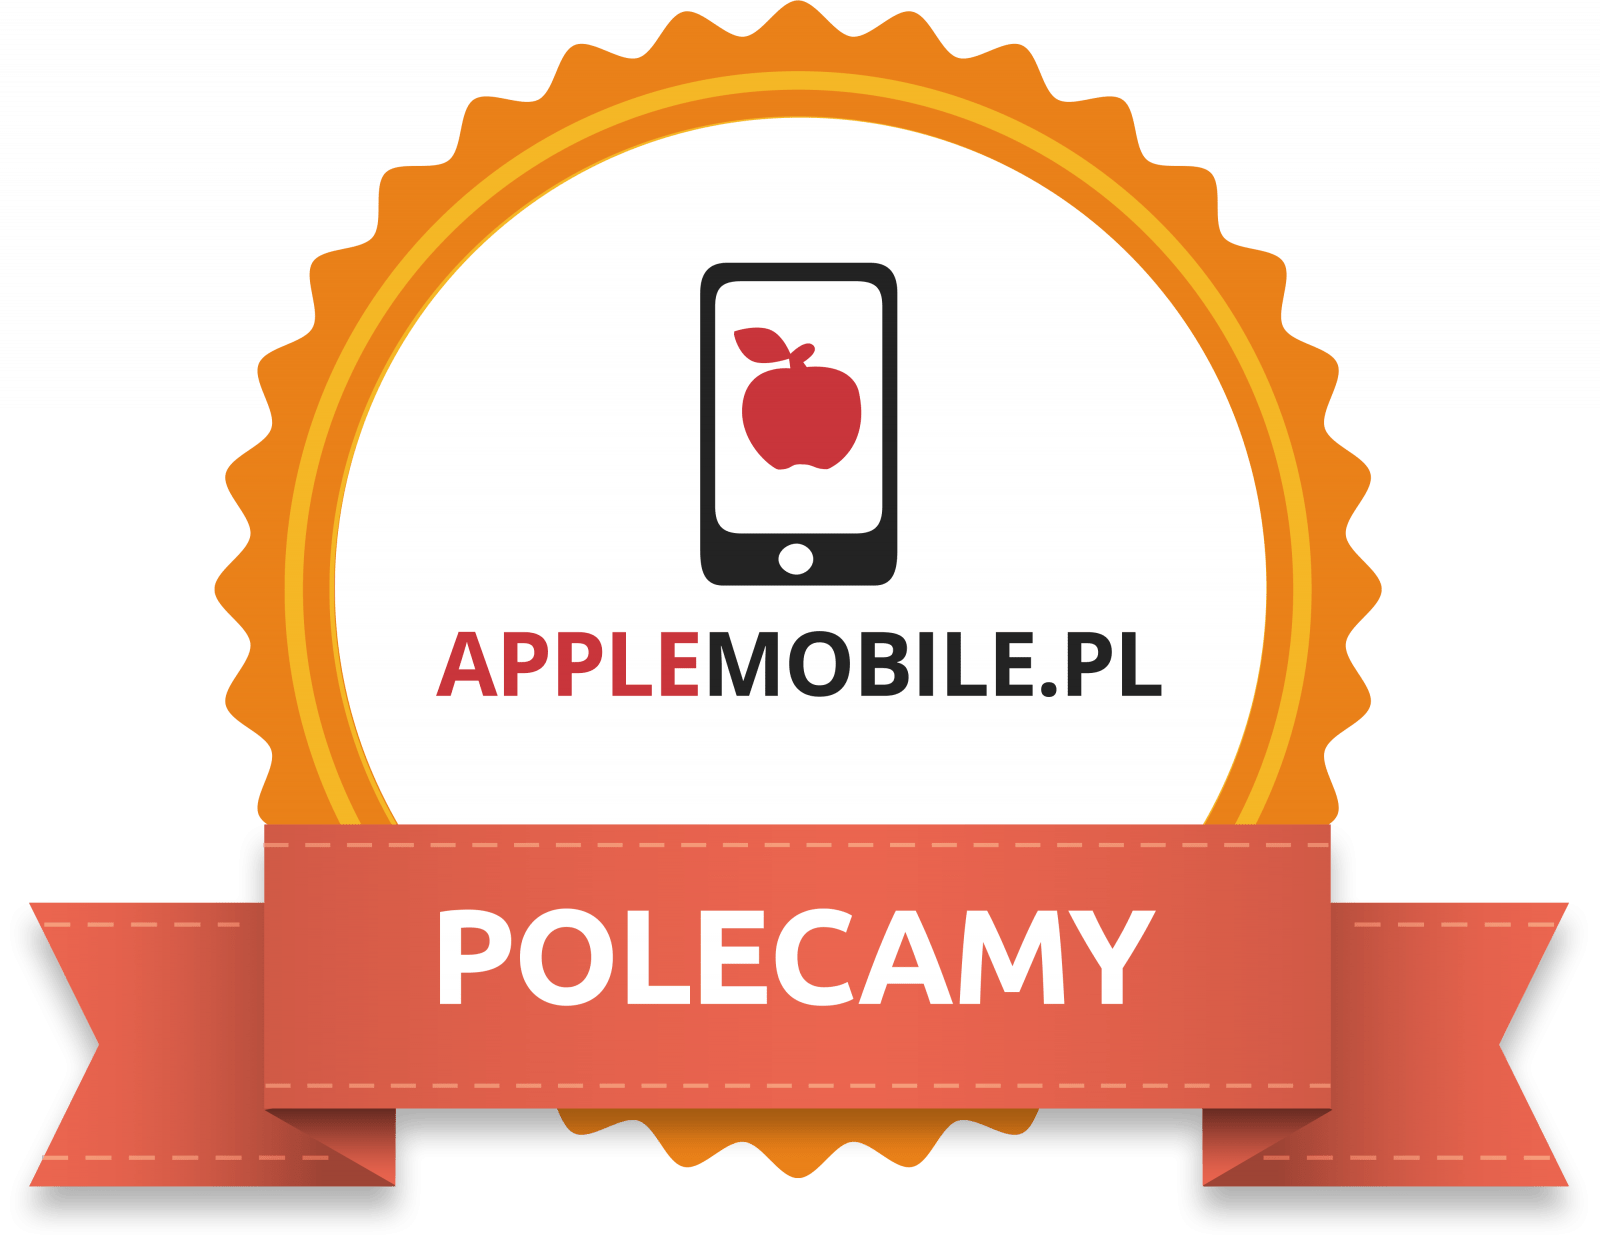 AppleMobile.pl POLECA ten produkt